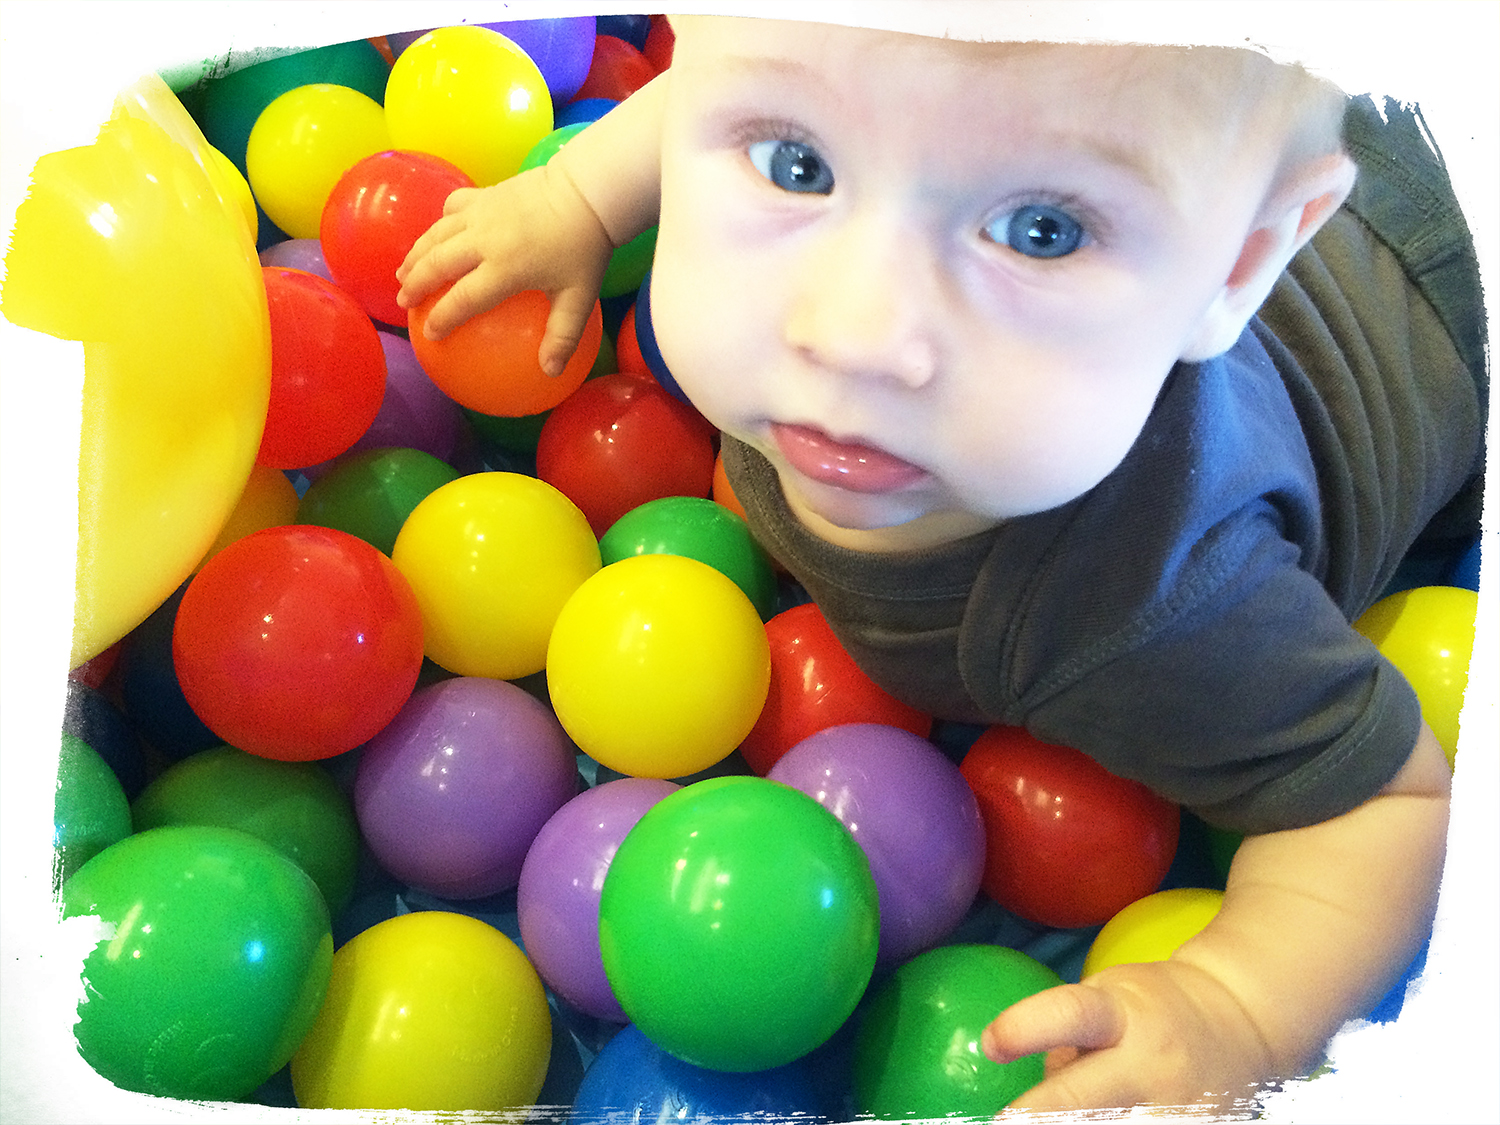 Josh playing with sensory balls